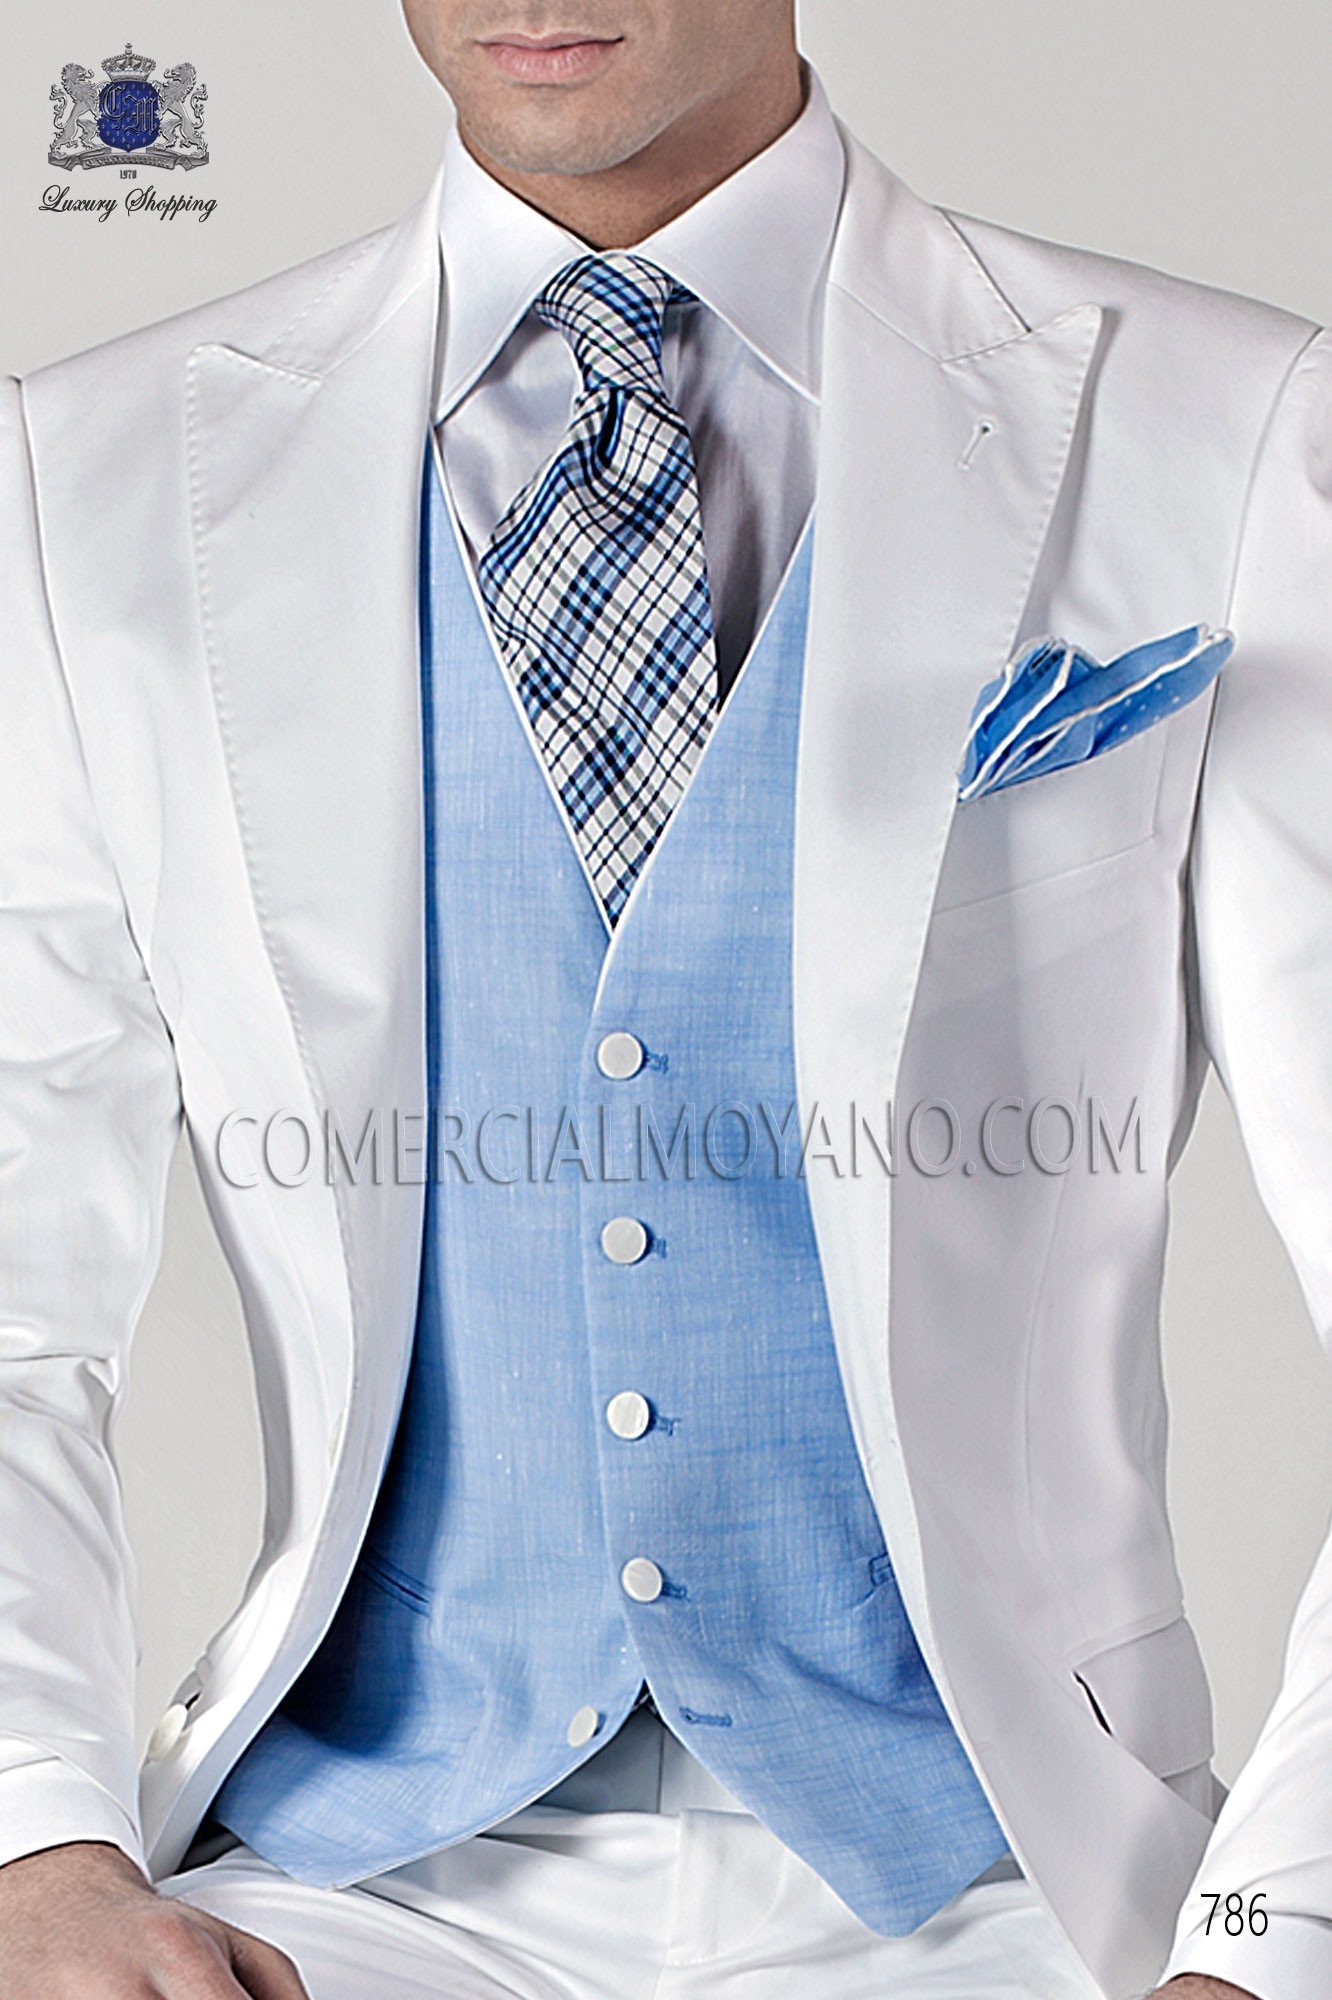 Hipster white men wedding suit, model: 786 Ottavio Nuccio Gala ...